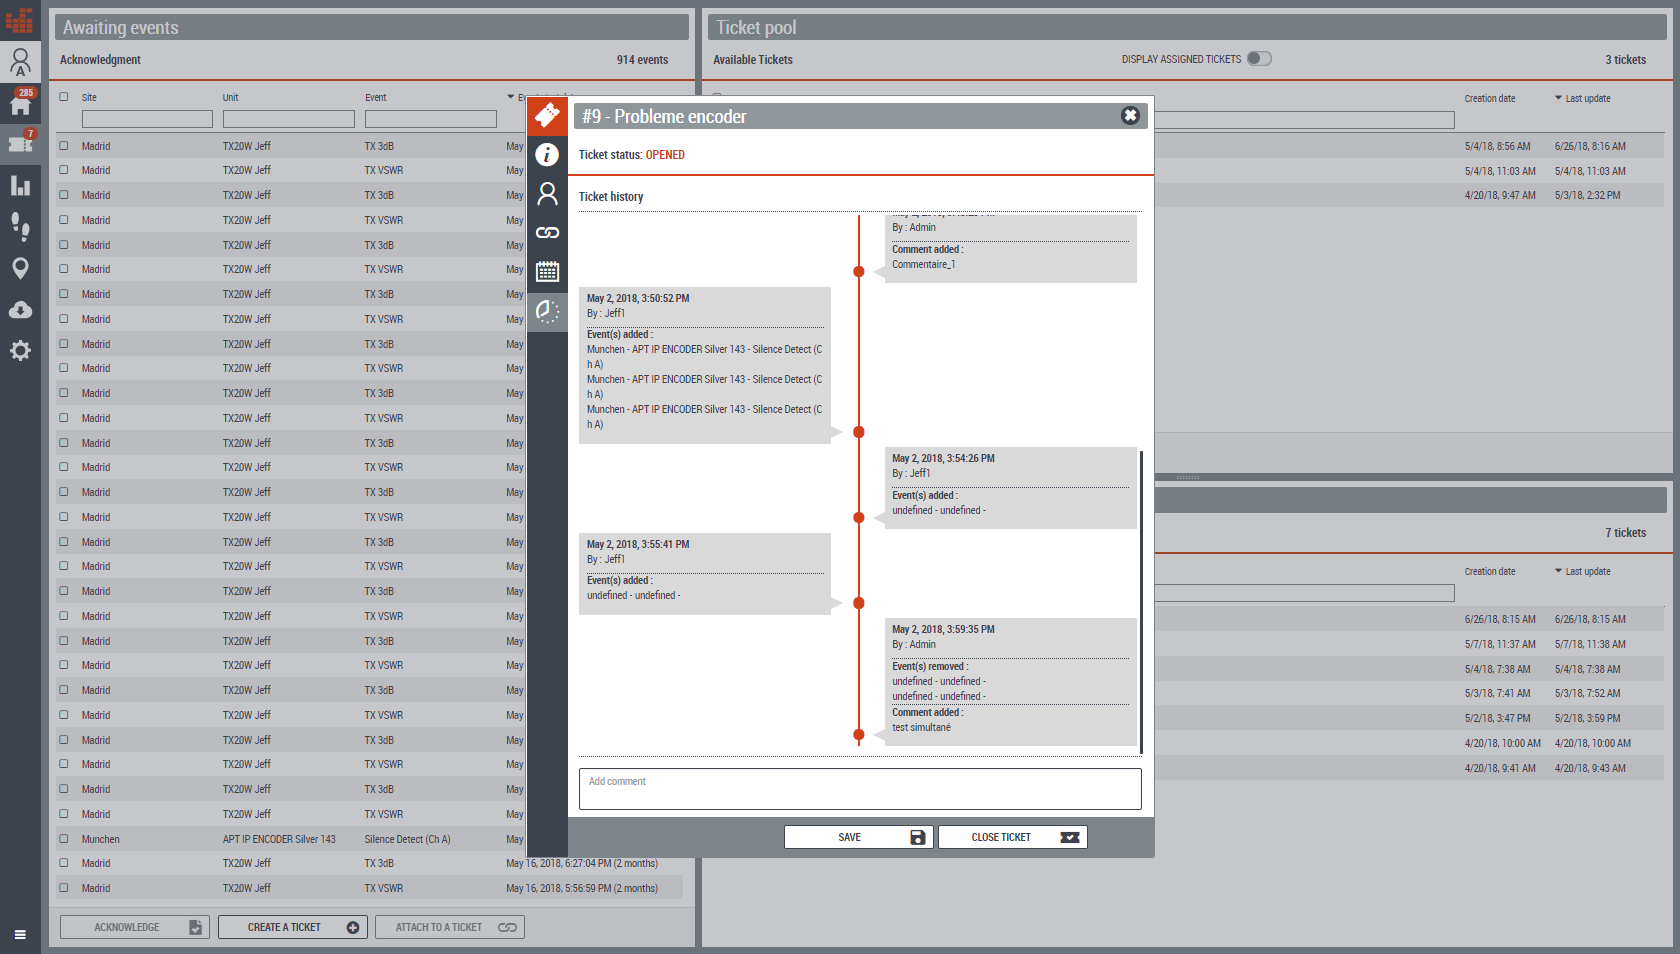 Worldcast Manager - Manage tickets & user assignments. Track operational responses.